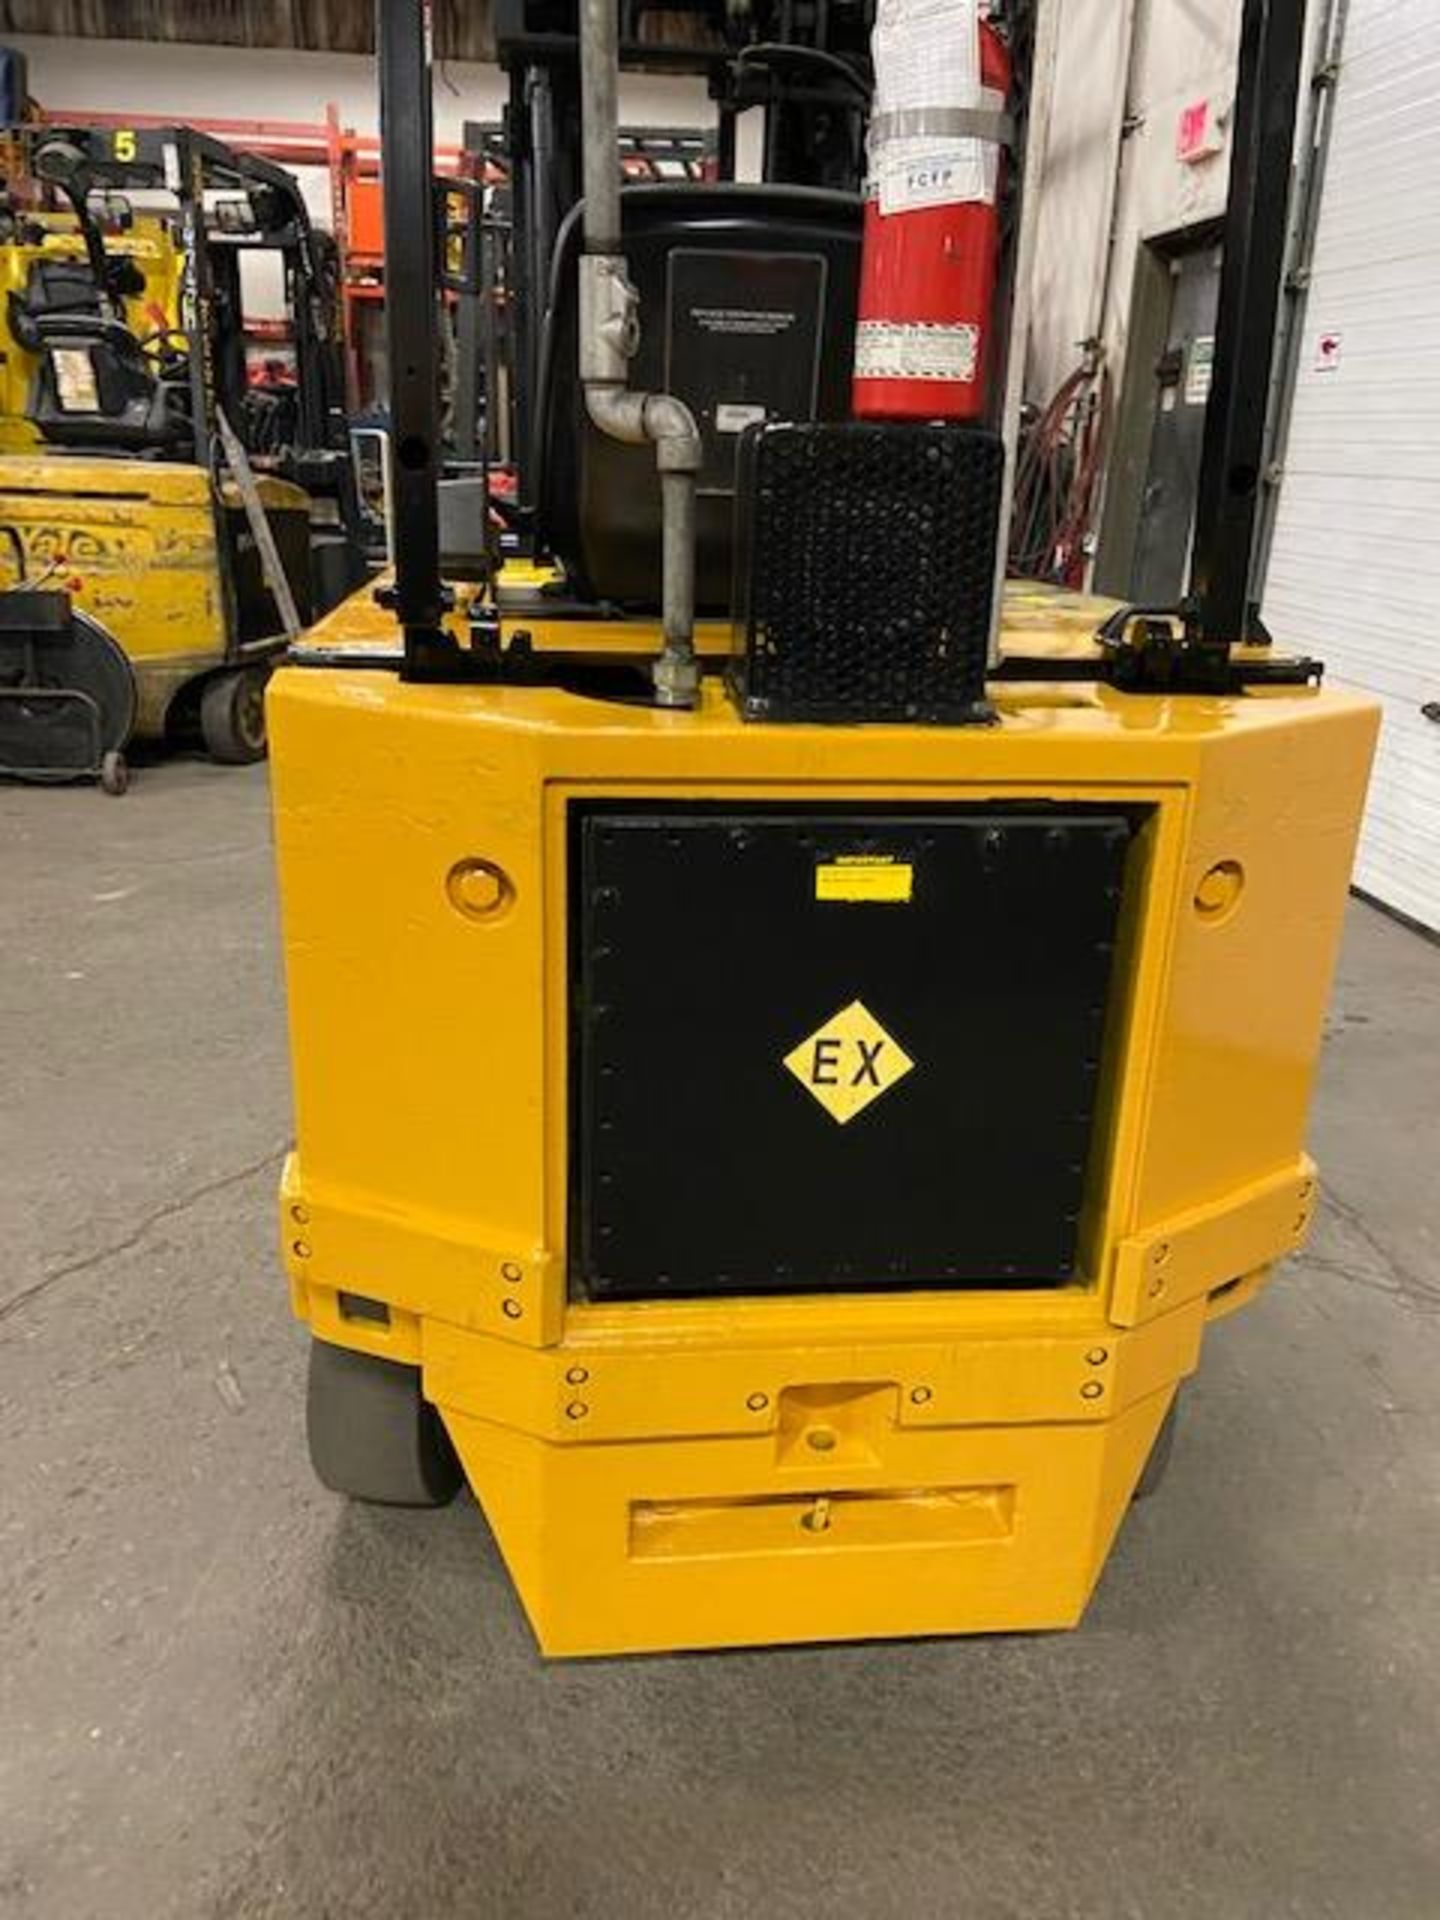 FREE CUSTOMS - ETS Explosion Proof Forklift BRASS Forks 4000lbs Capacity Electric with 3-STAGE - Image 5 of 5